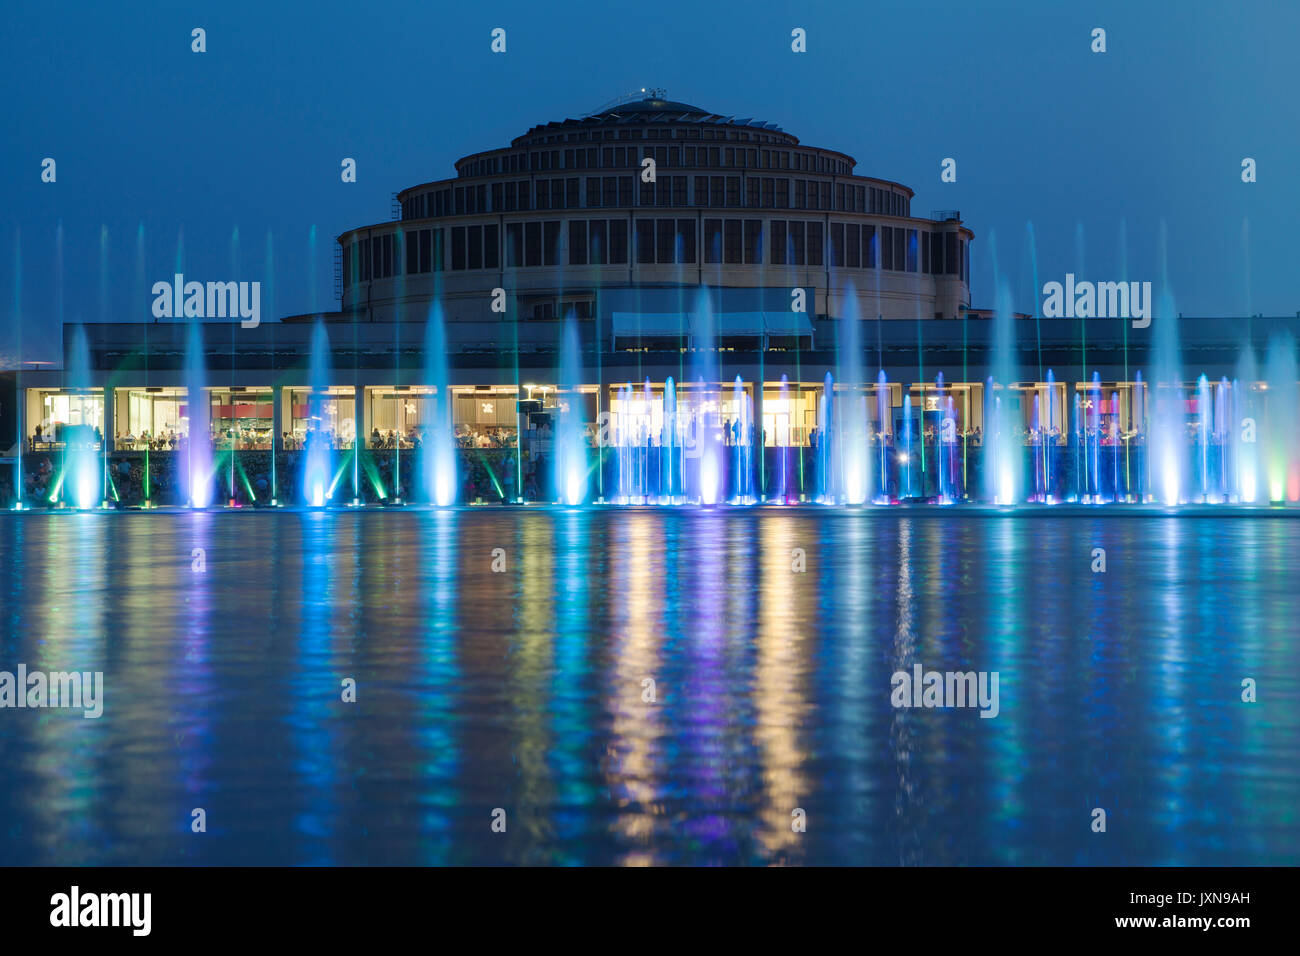 Multimedia Fountain in Wroclaw, Poland. - Stock Image